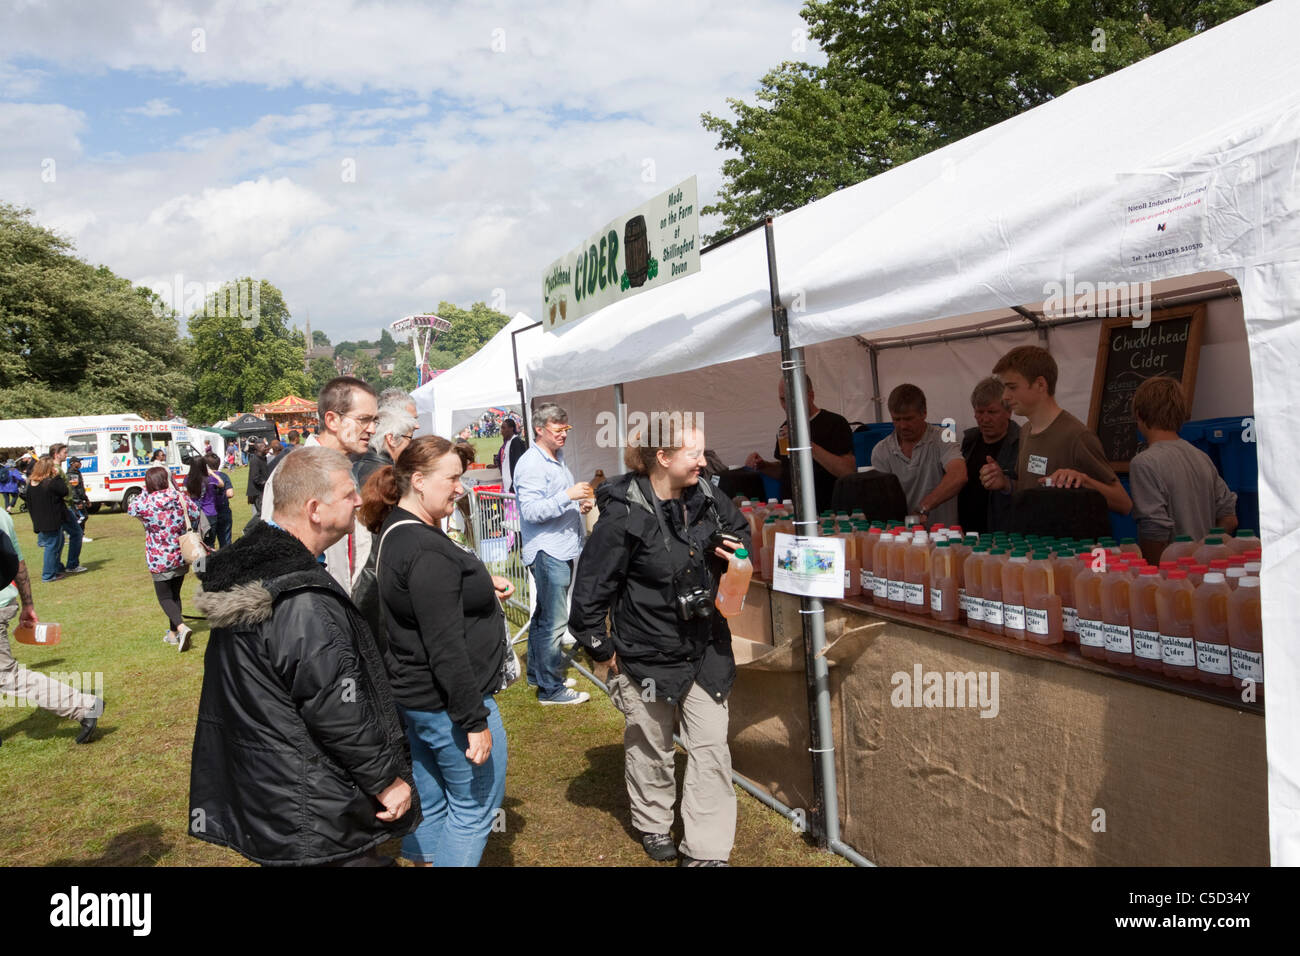 People buying Chucklehead cider from a stall at the Lambeth Country Show, London, England, UK - Stock Image